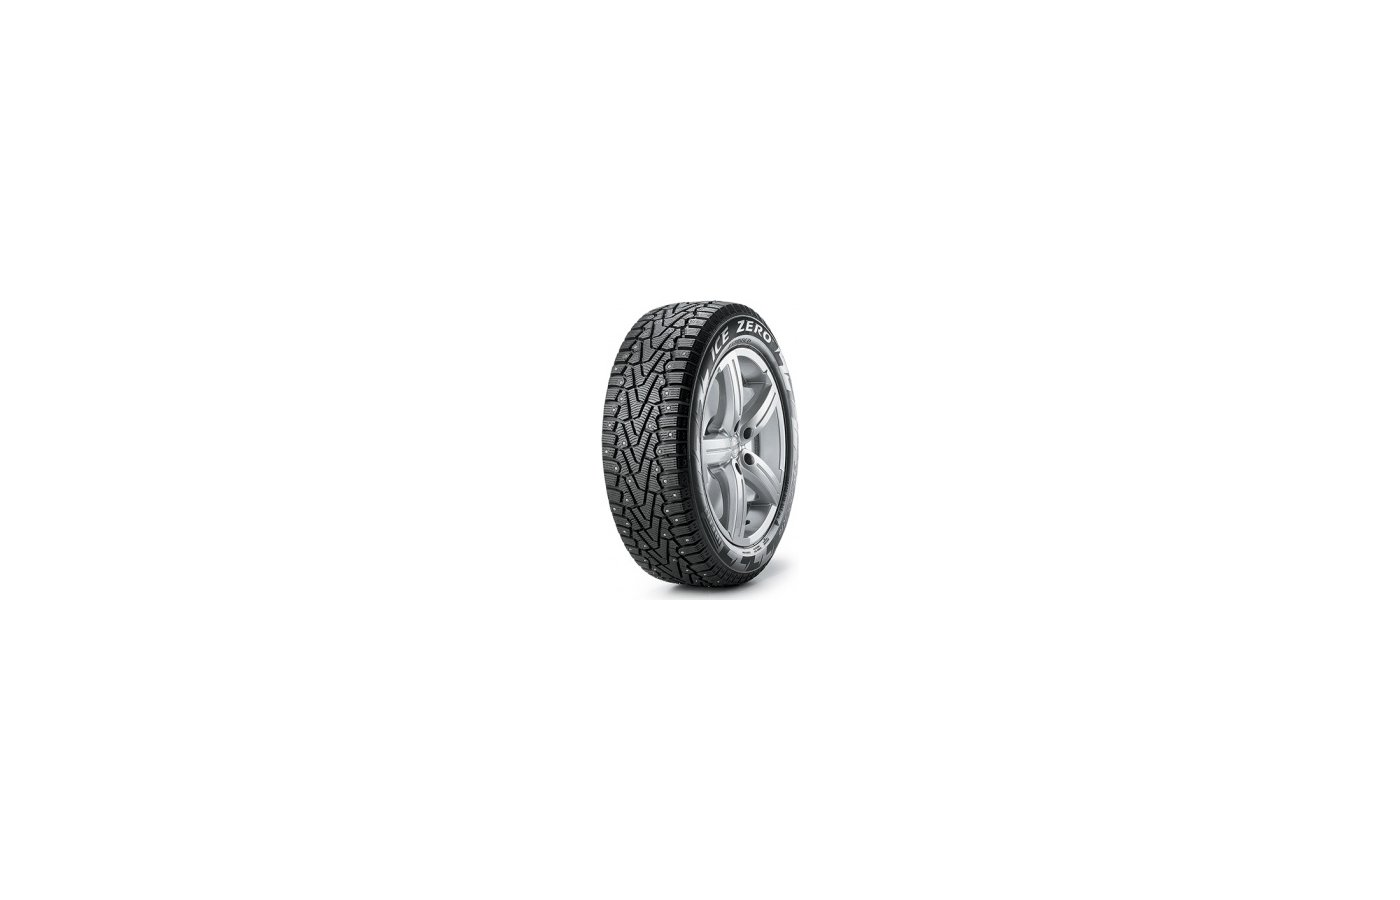 Шина Pirelli Winter Ice Zero 225/45 R17 TL 94T шип